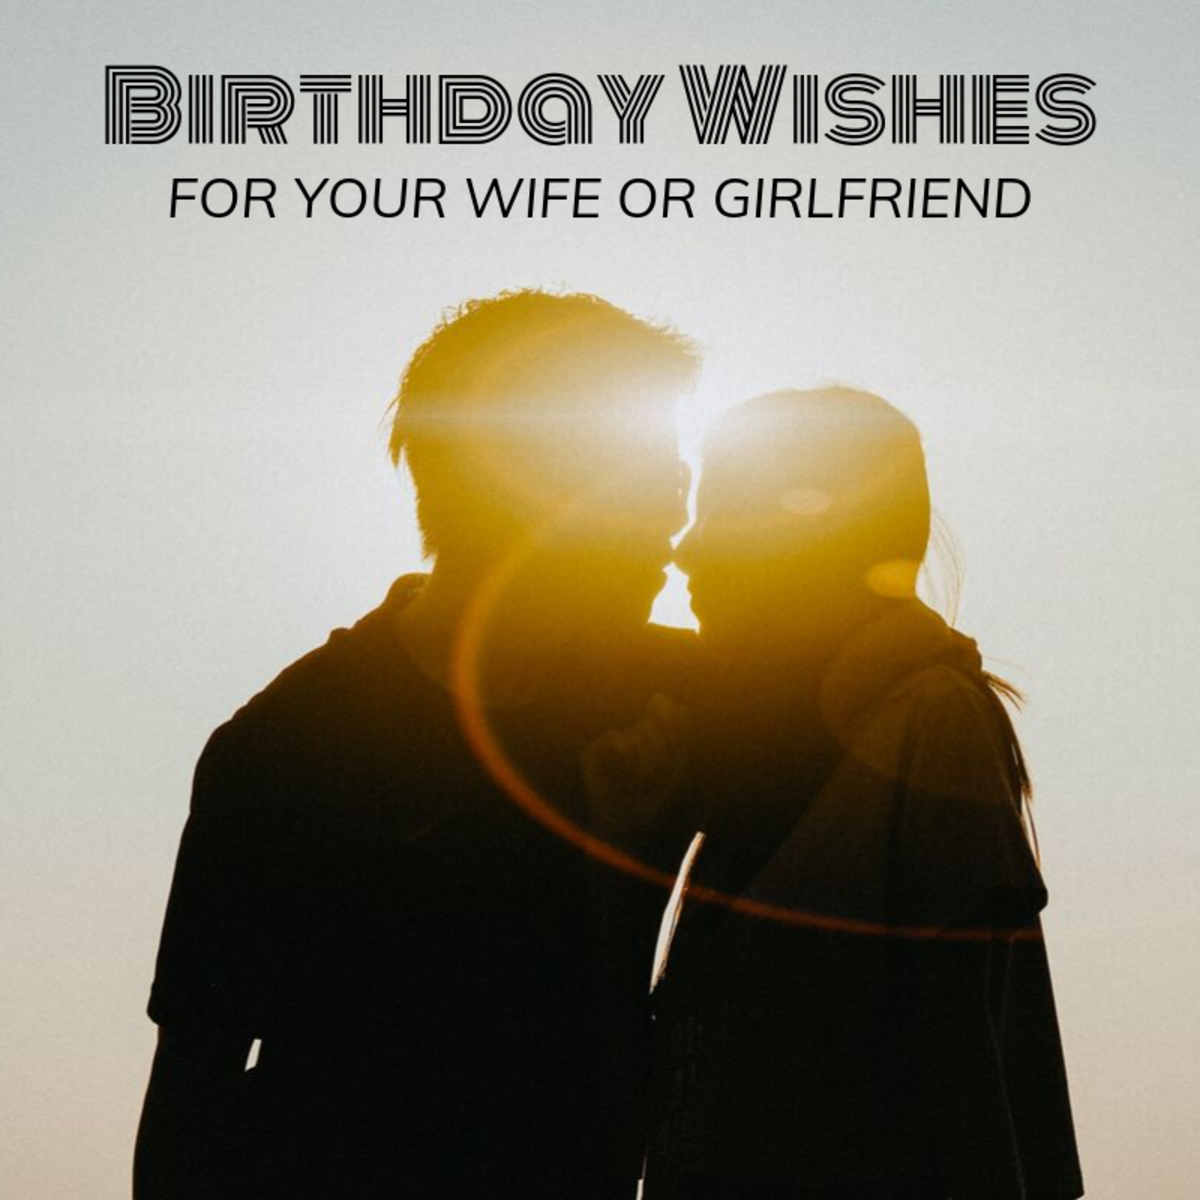 Wife or girlfriend's birthday coming up? Use these example birthday messages to get ideas and inspiration for what to write in her card.